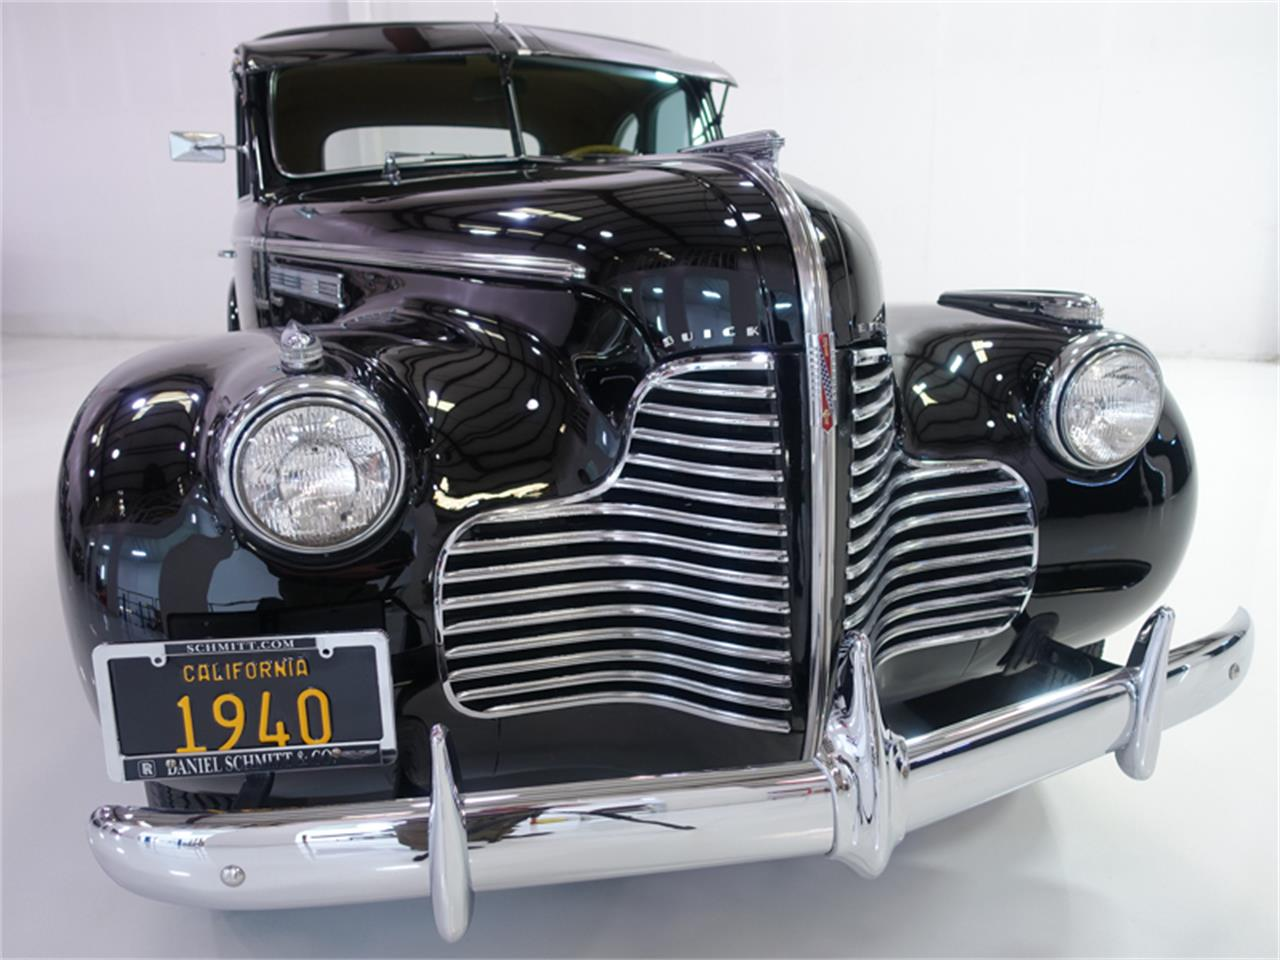 Large Picture of Classic '40 Special located in Missouri Offered by Daniel Schmitt & Co. - P6N9